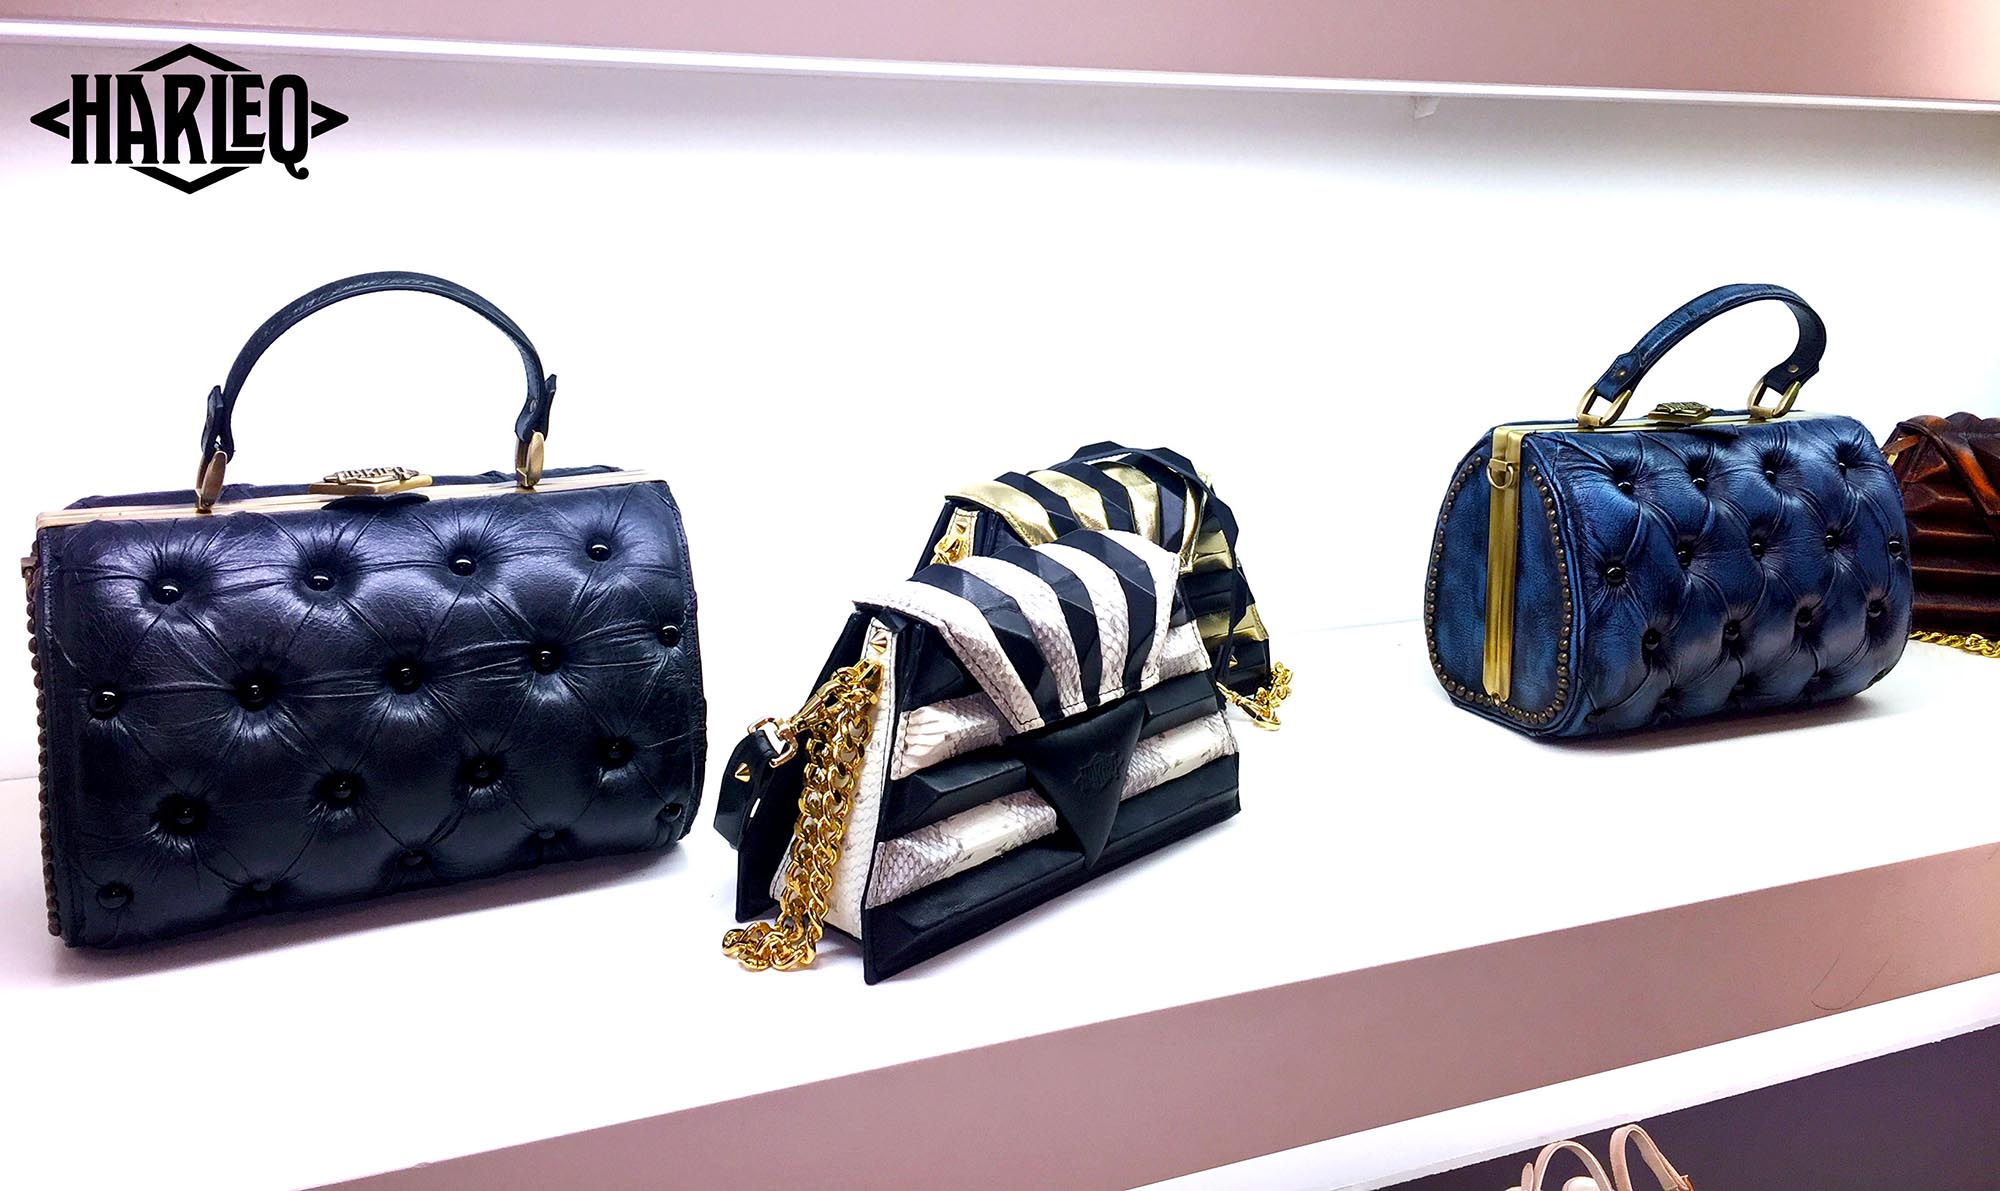 harleq-handbags-luxury-leathers-paris-shop